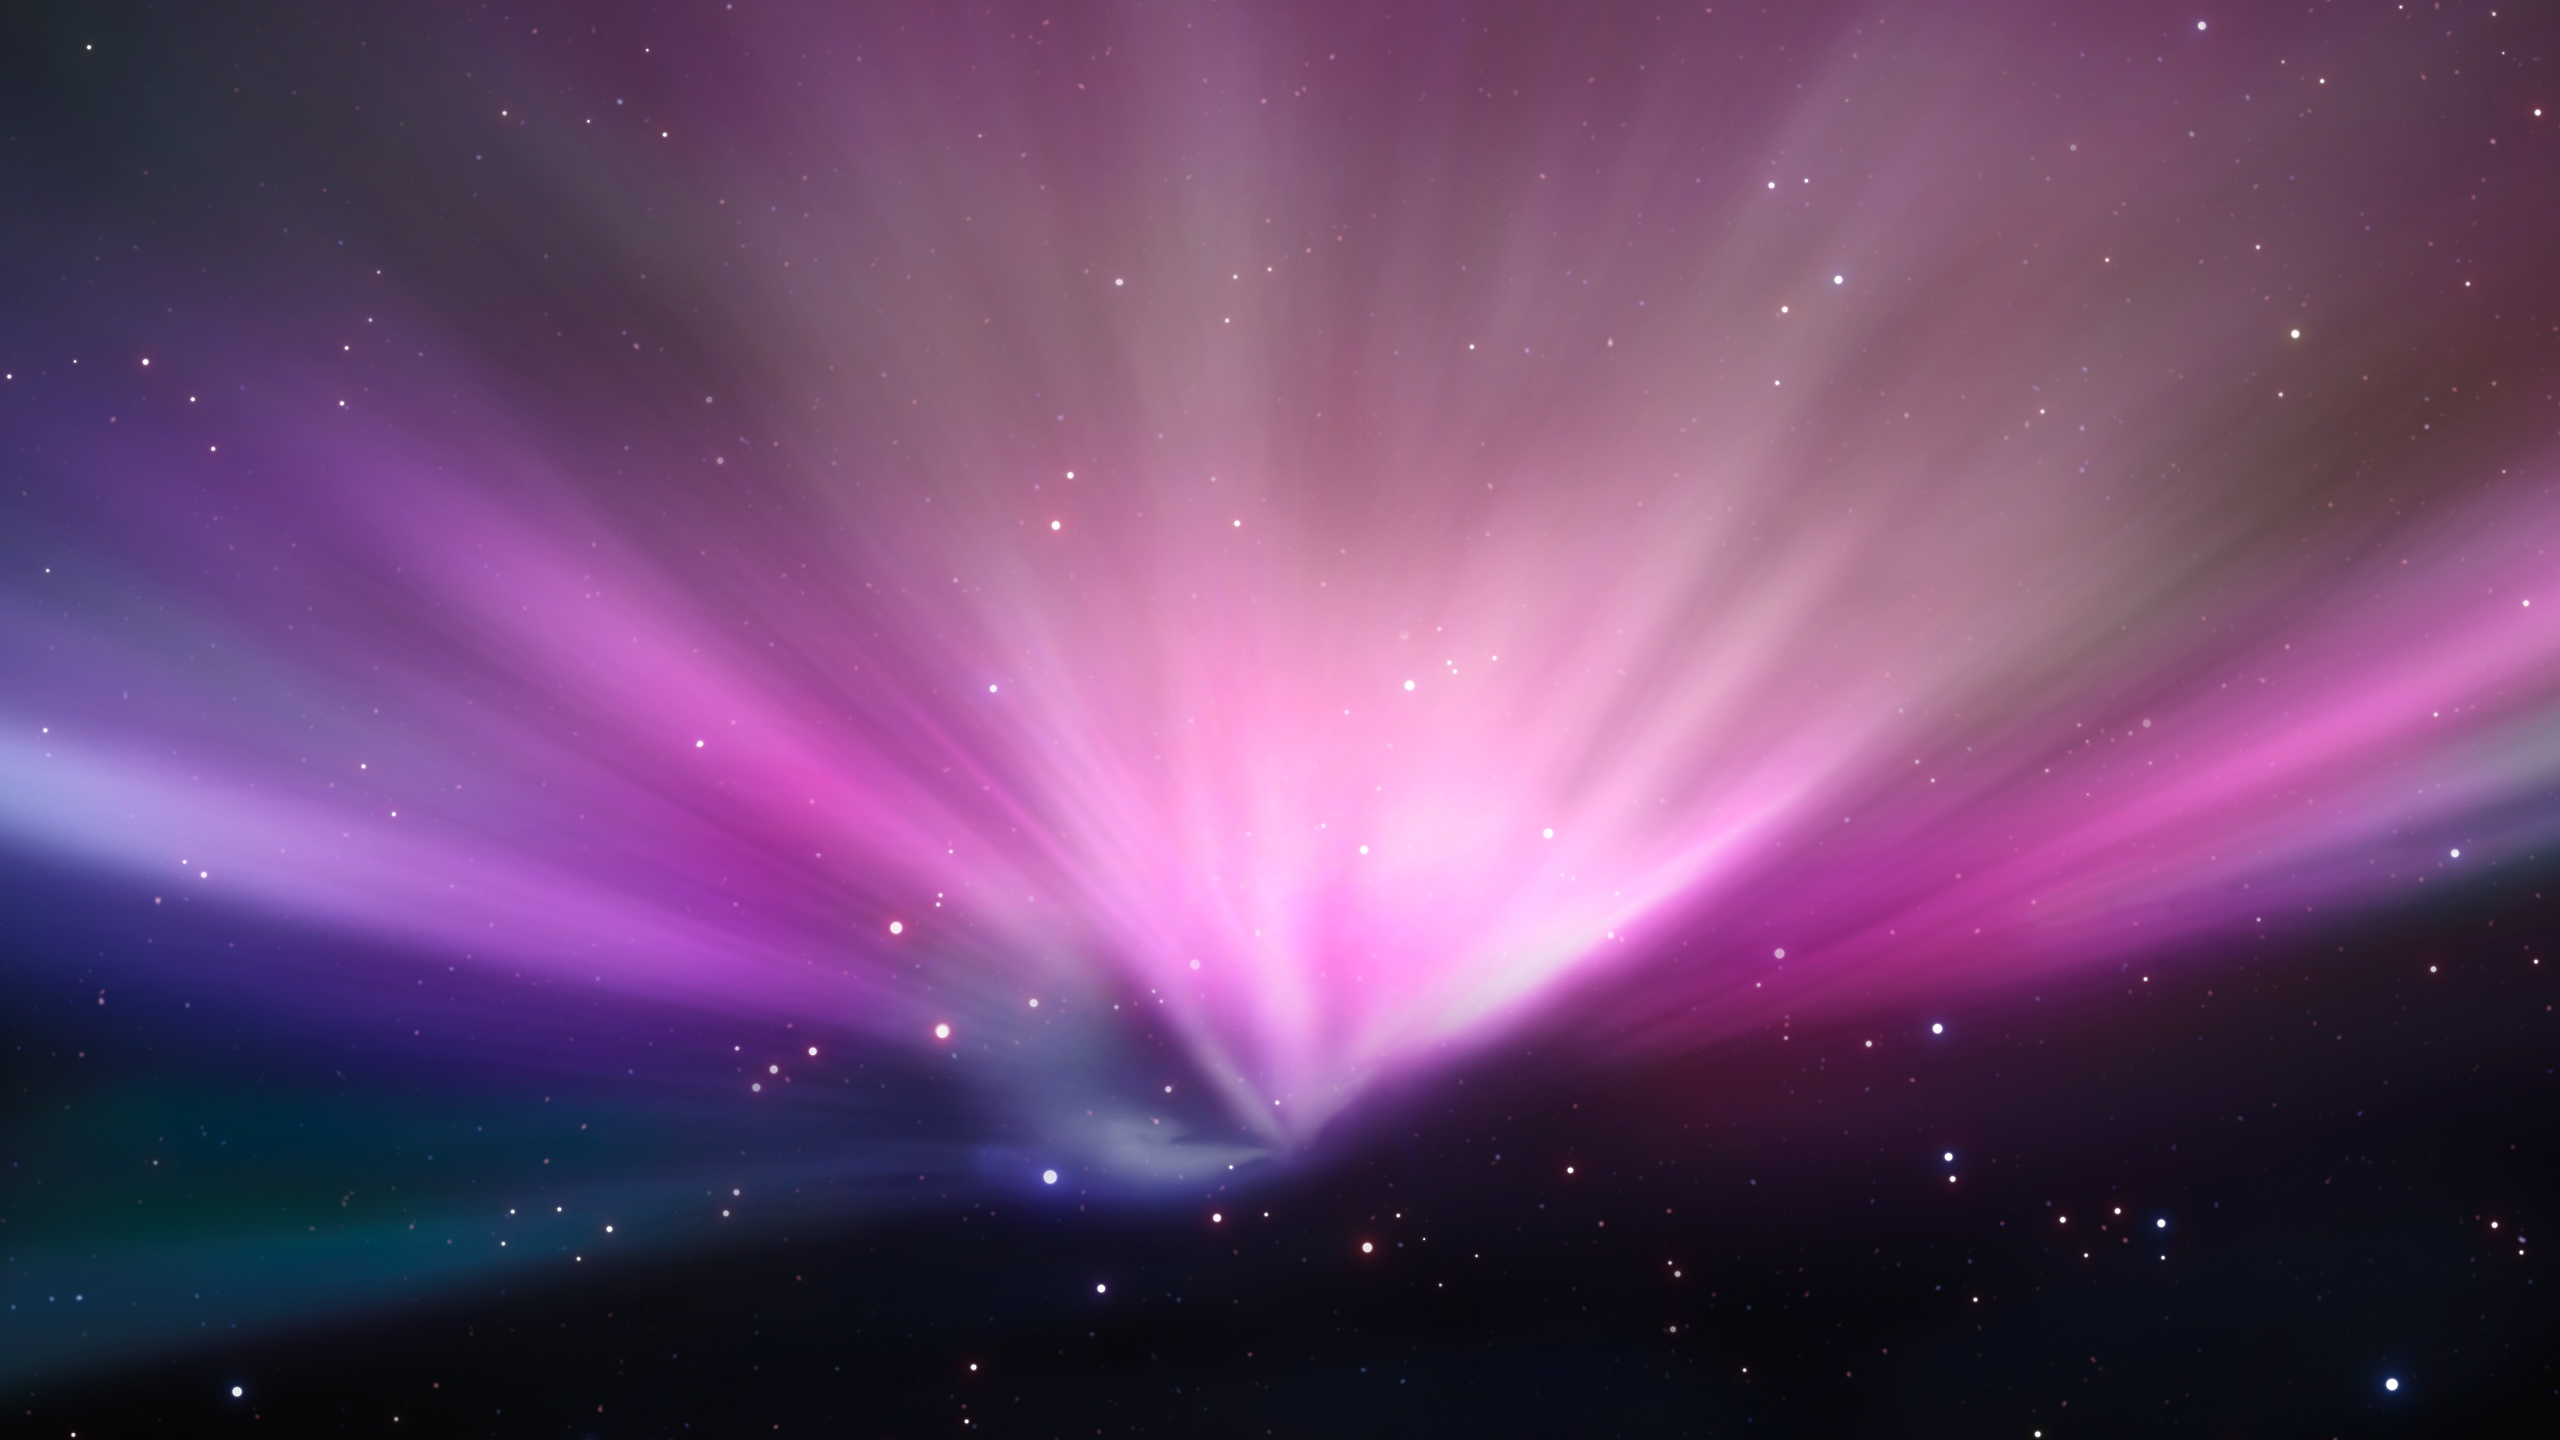 2560x1440 Aurora in space desktop PC and Mac wallpaper